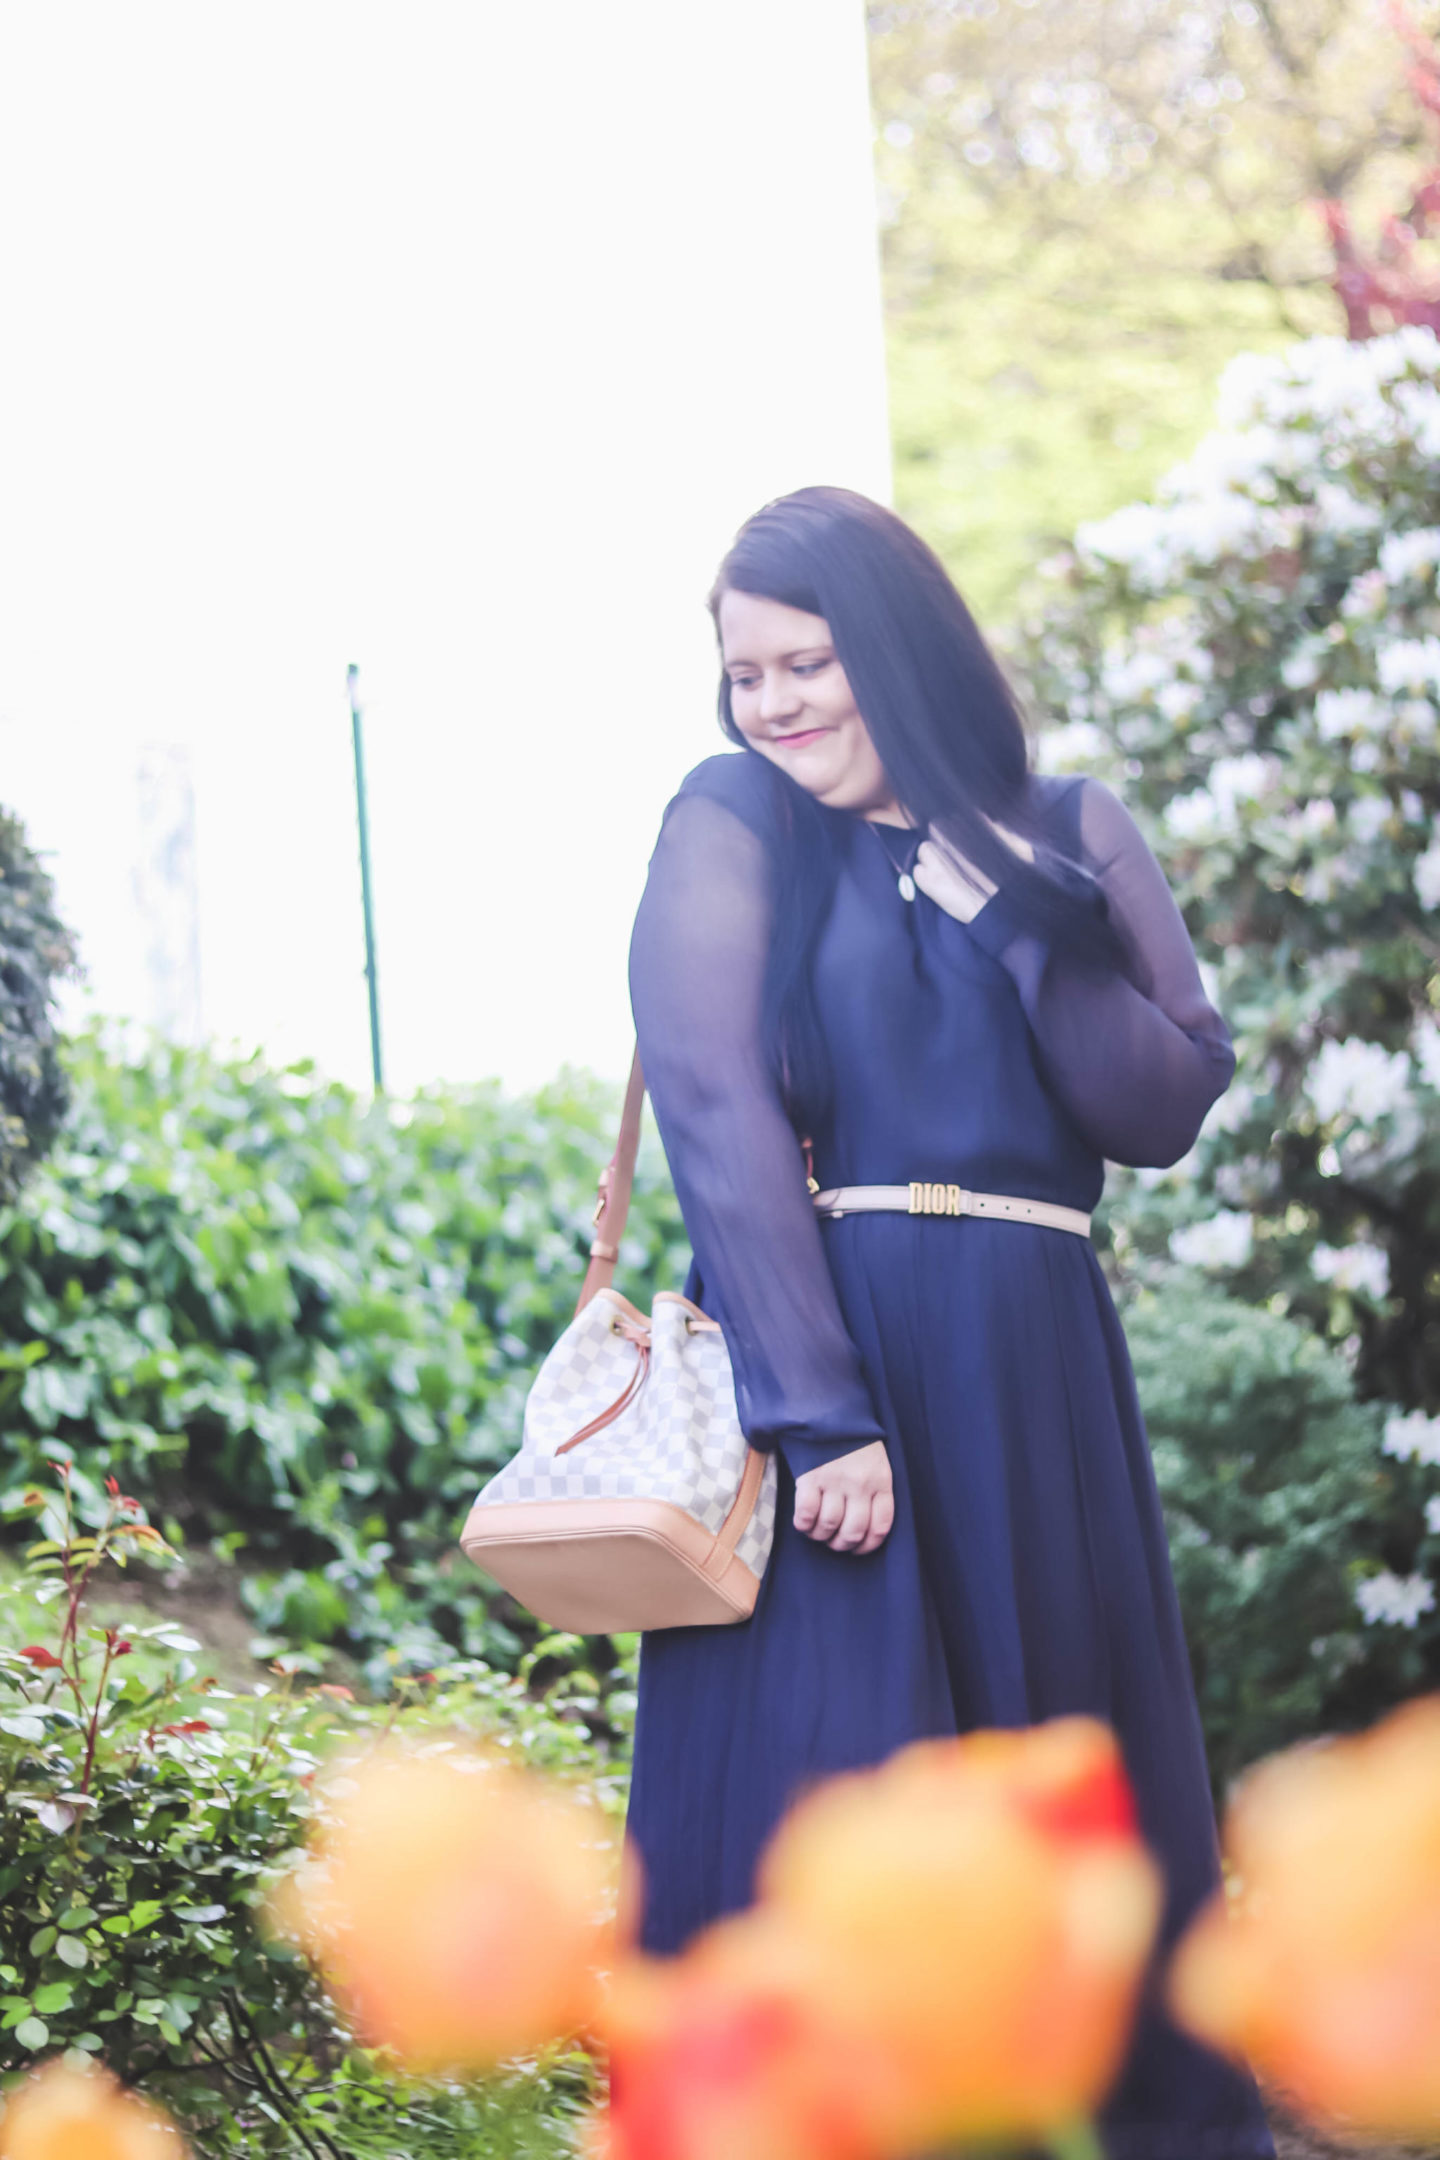 (Outfit) Midikleid auch im Sommer